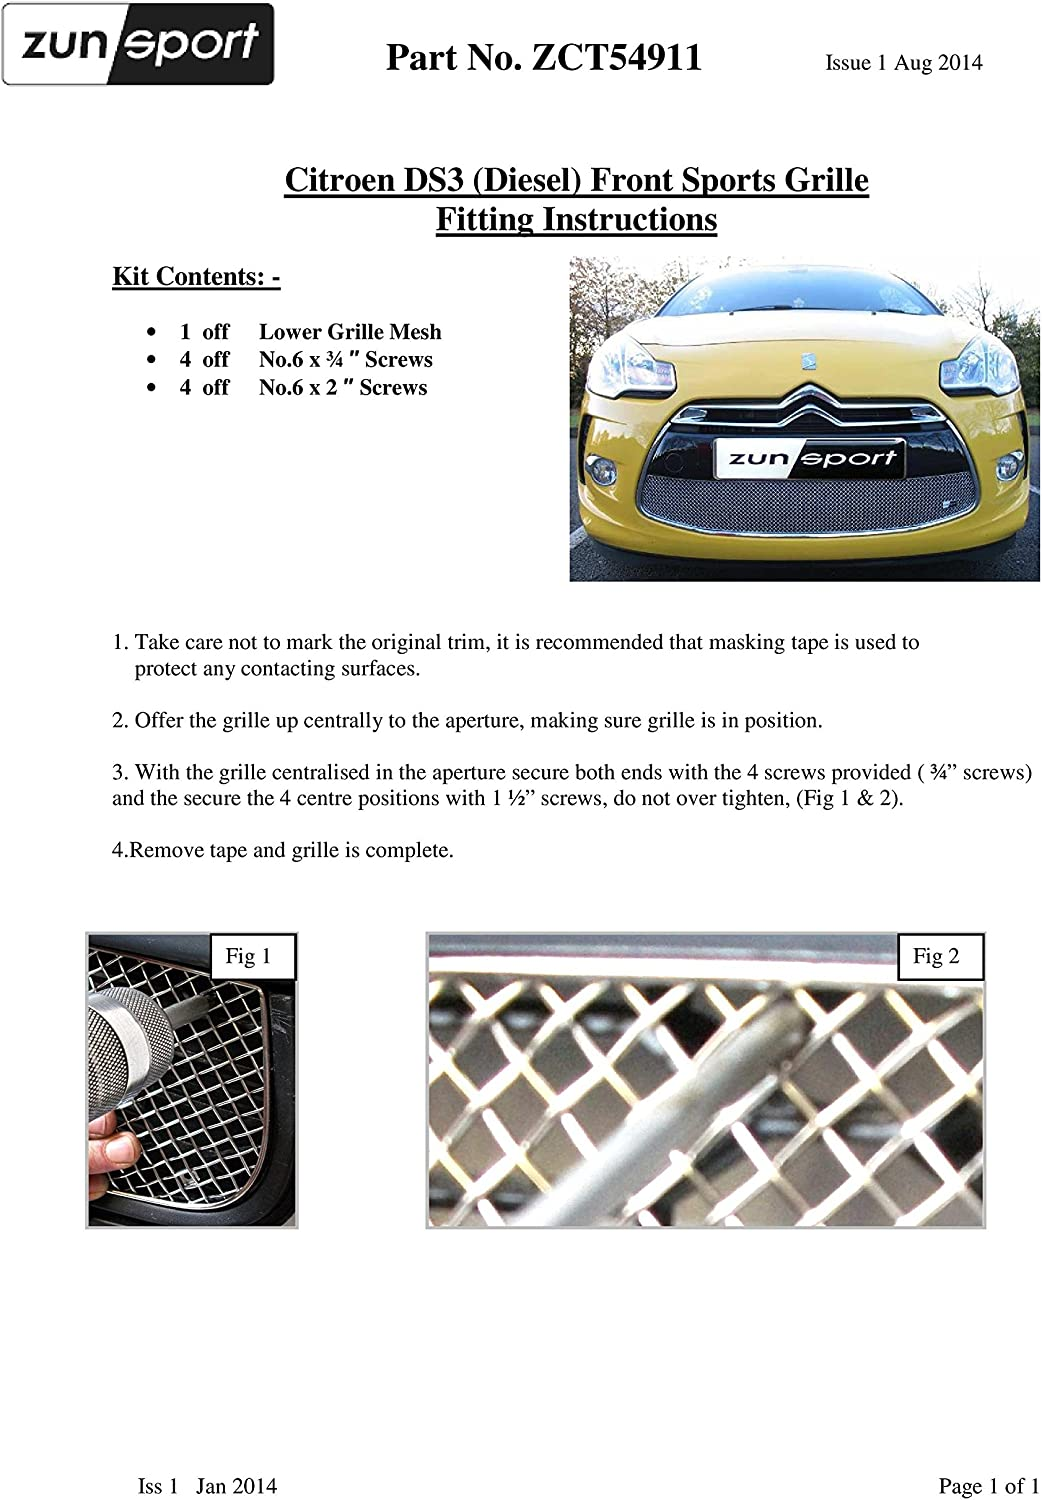 Zunsport Compatible With Citroen DS3 Diesel Black finish Lower Grille 2011 onwards